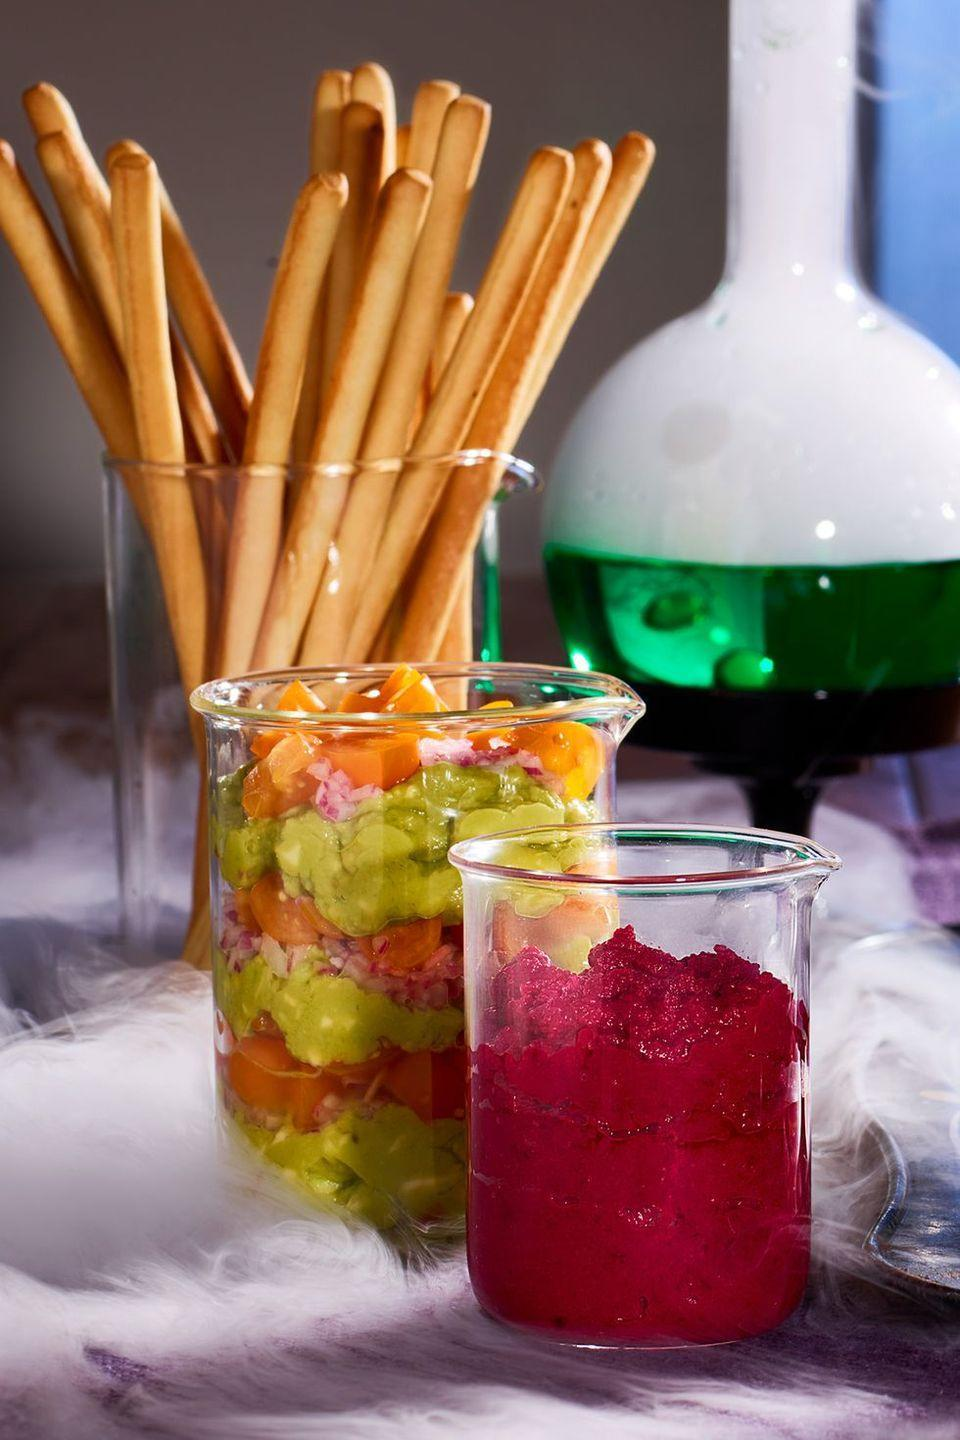 <p>Instead of serving guac and hummus in a regular old bowl, buy test tubes from your local craft store to create a mad scientist-inspired setting.</p>